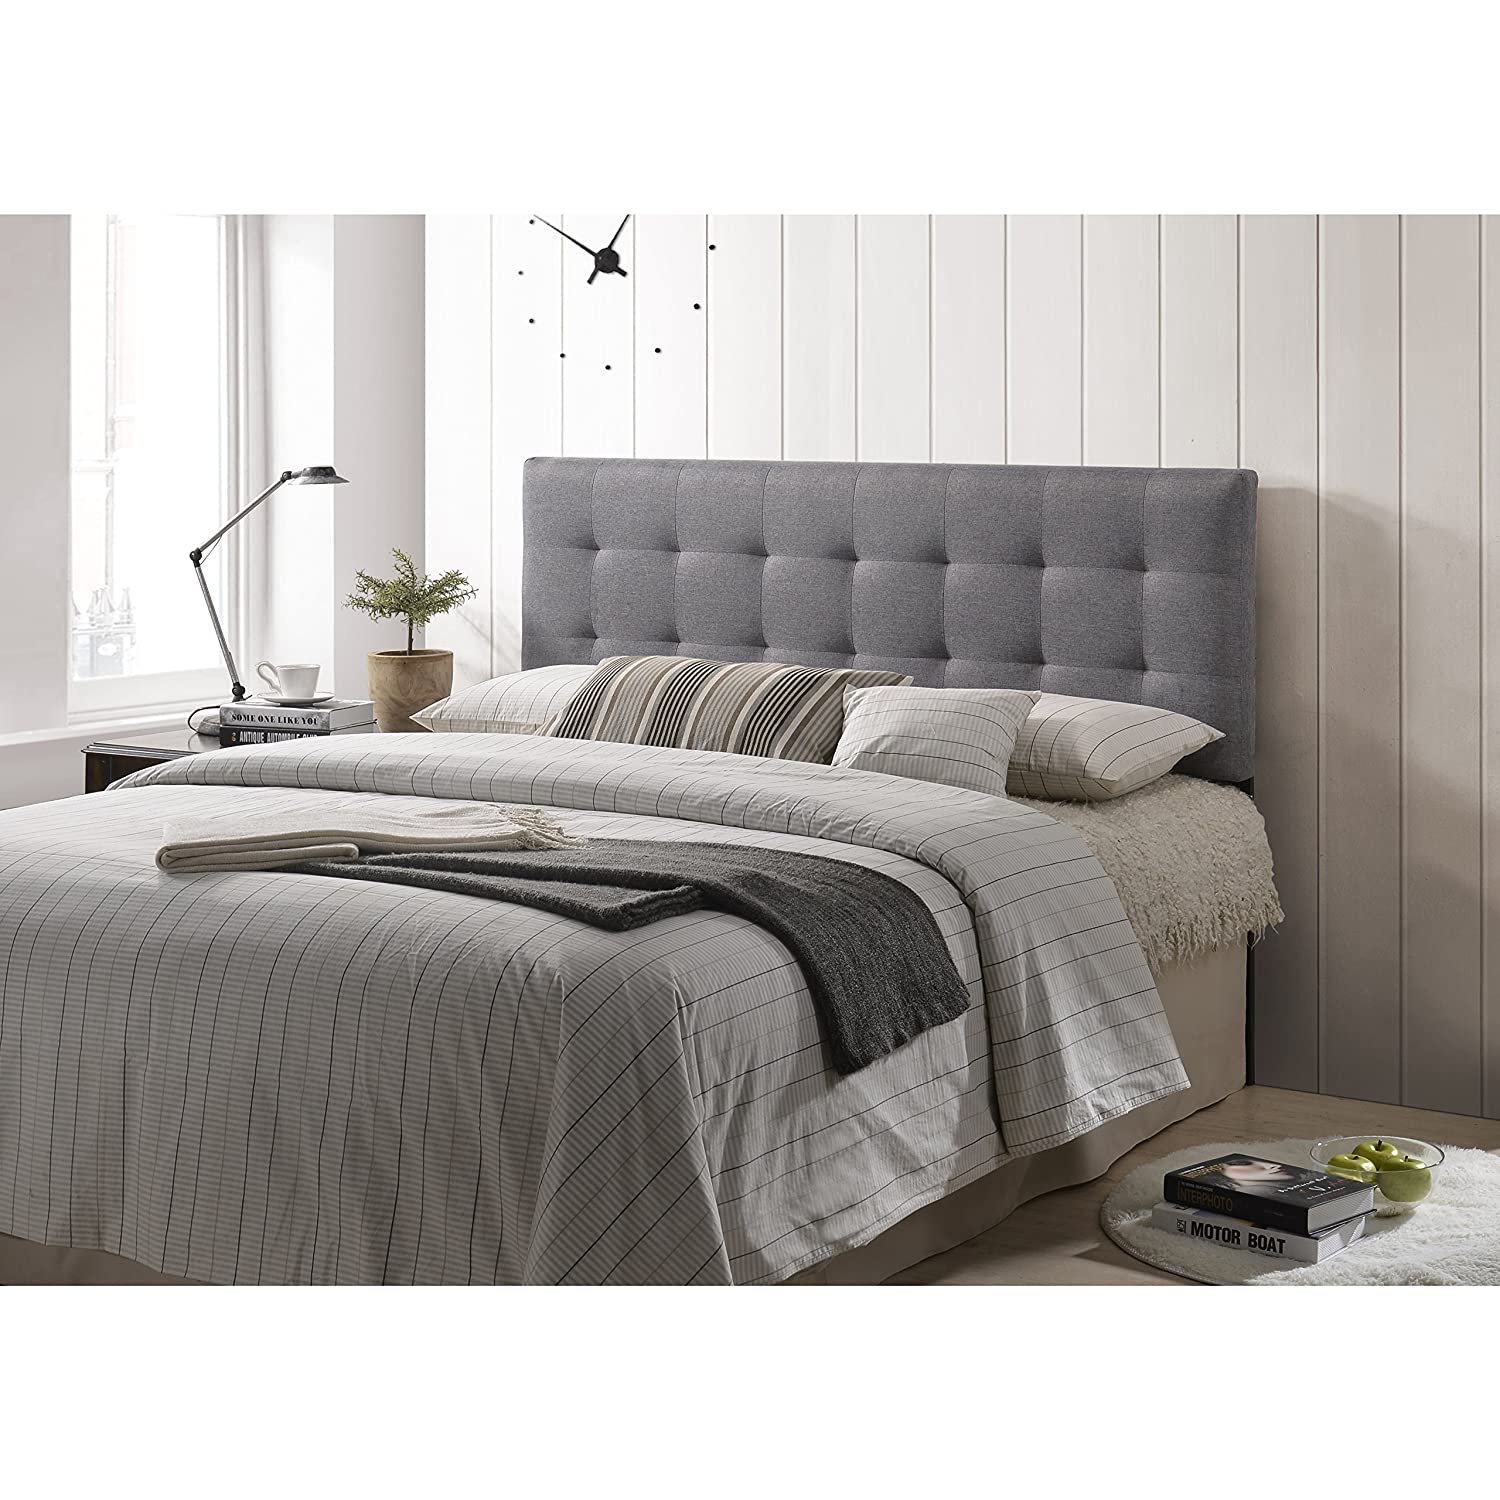 huge selection of 5c7af 95266 POLY & BARK EM-297-GRY Guilia Square-Stitched Headboard, Queen Size, Gray